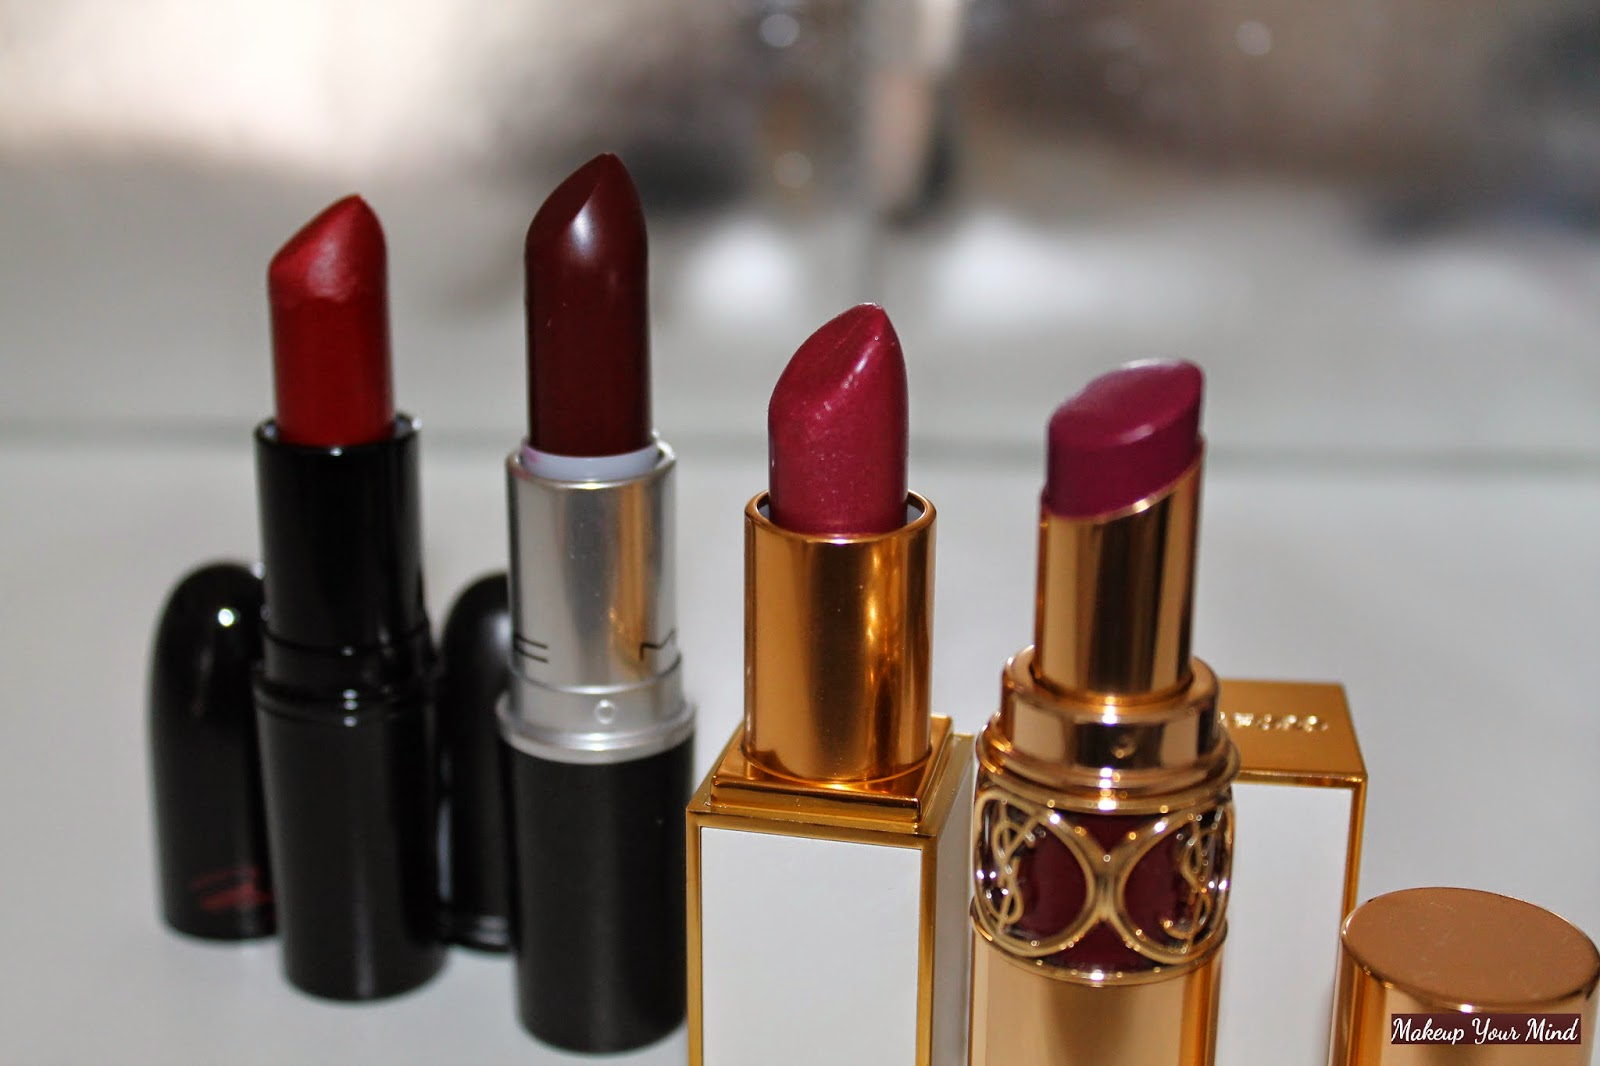 Makeup Your Mind Vampy Lips Mac Quot Sin Quot Lipstick And Some